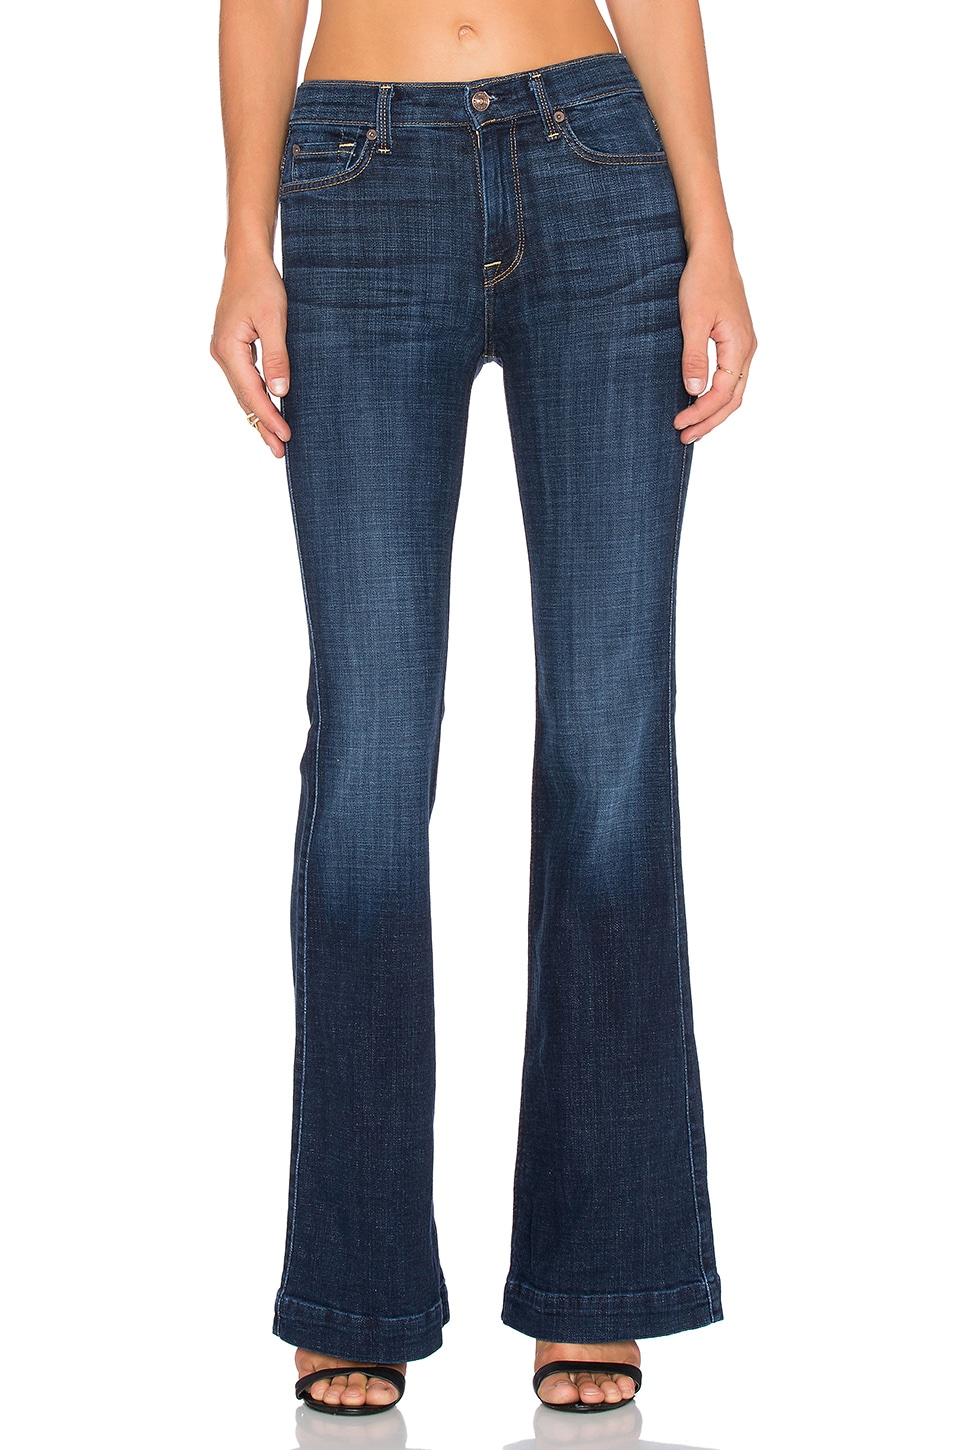 7 For All Mankind Ginger Flare in Royal Broken Twill